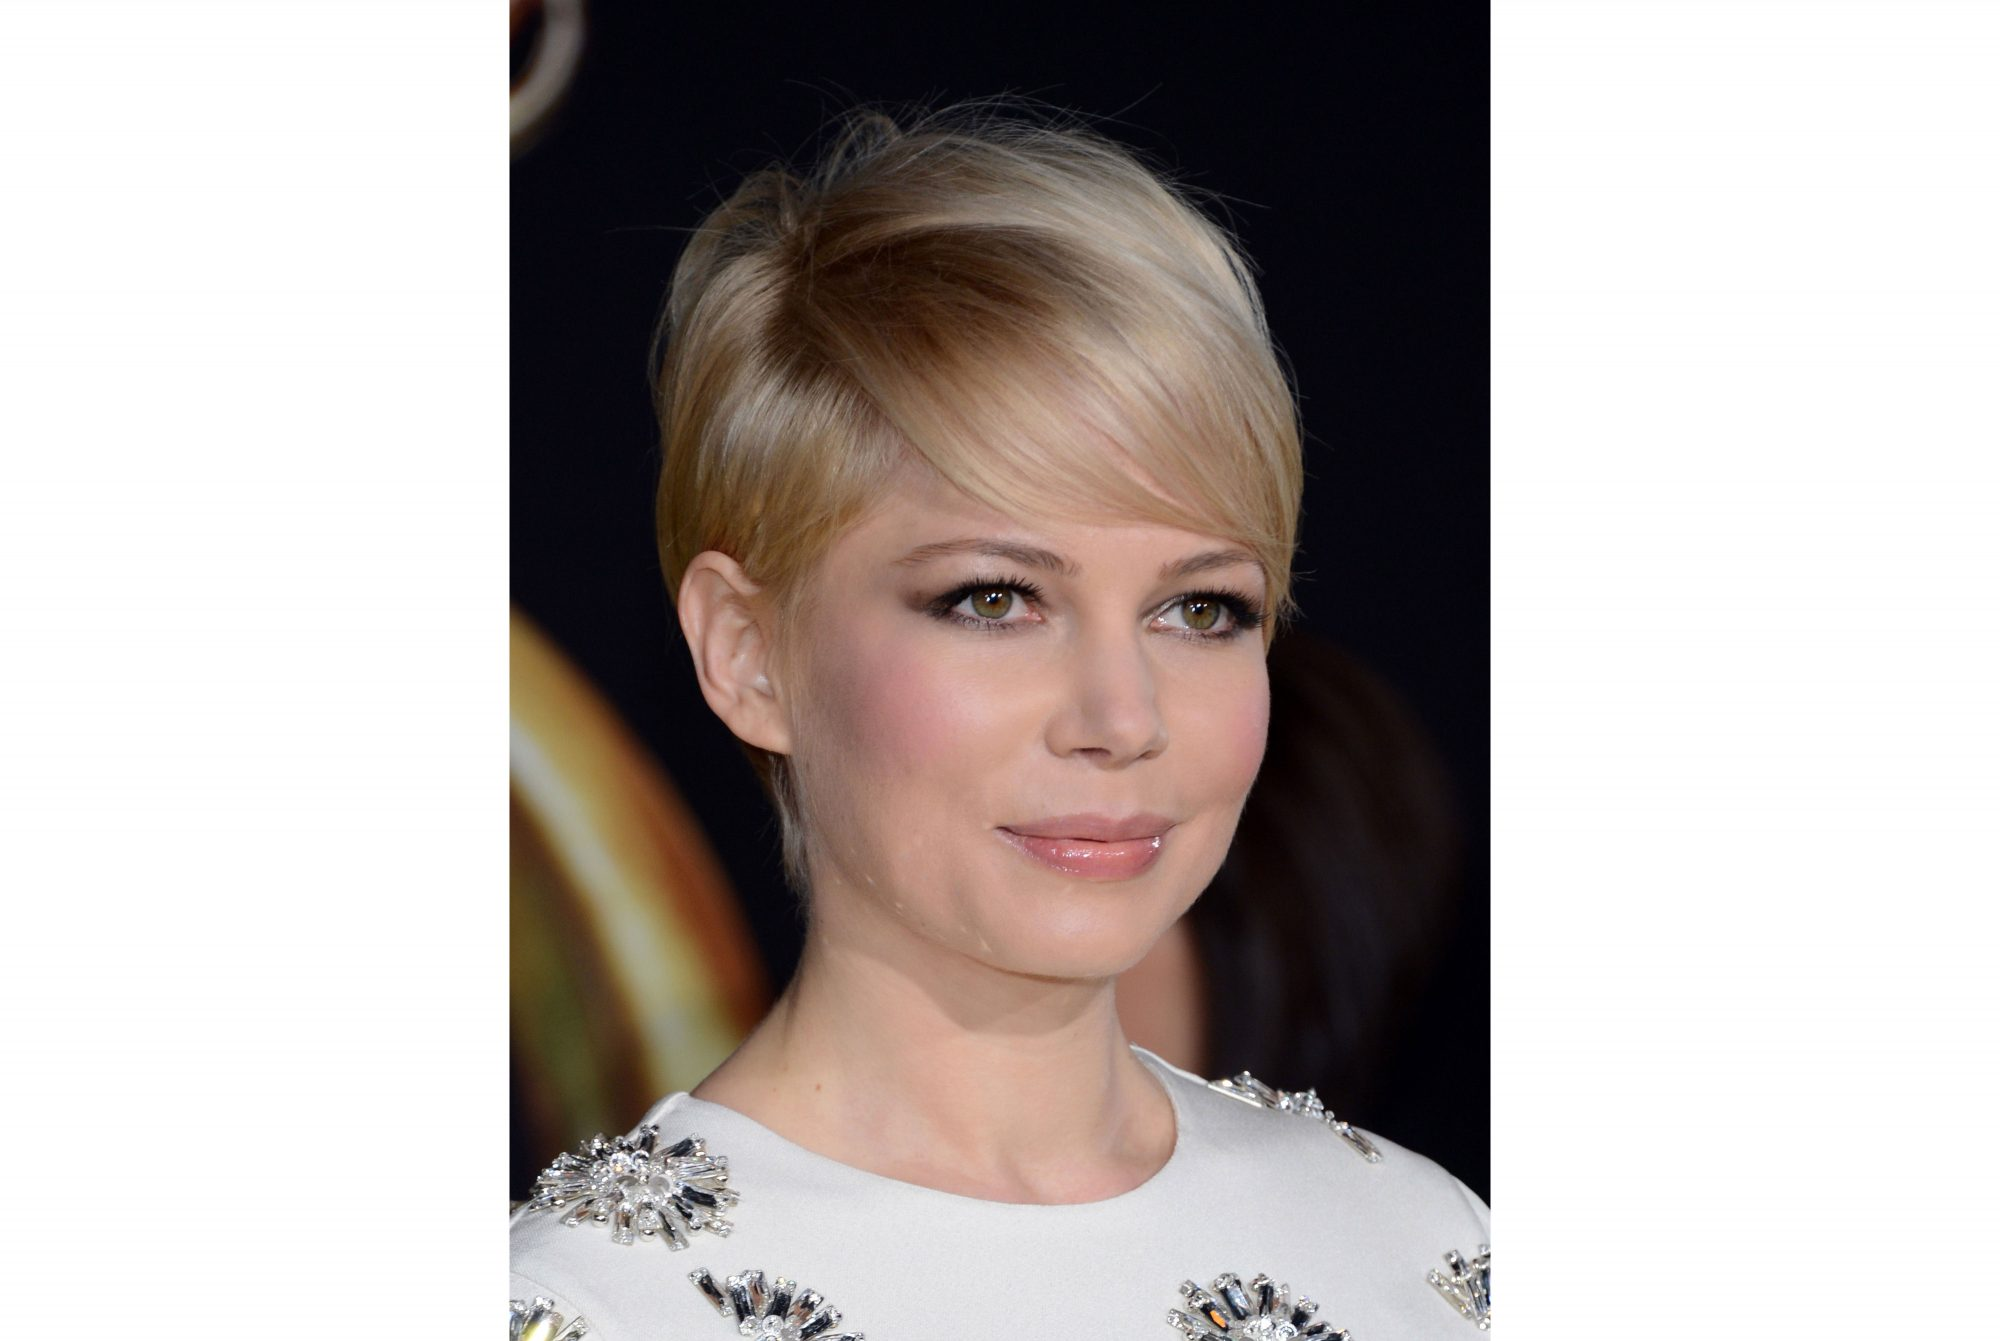 The Best Pixie Cut For Thin Hair Southern Living